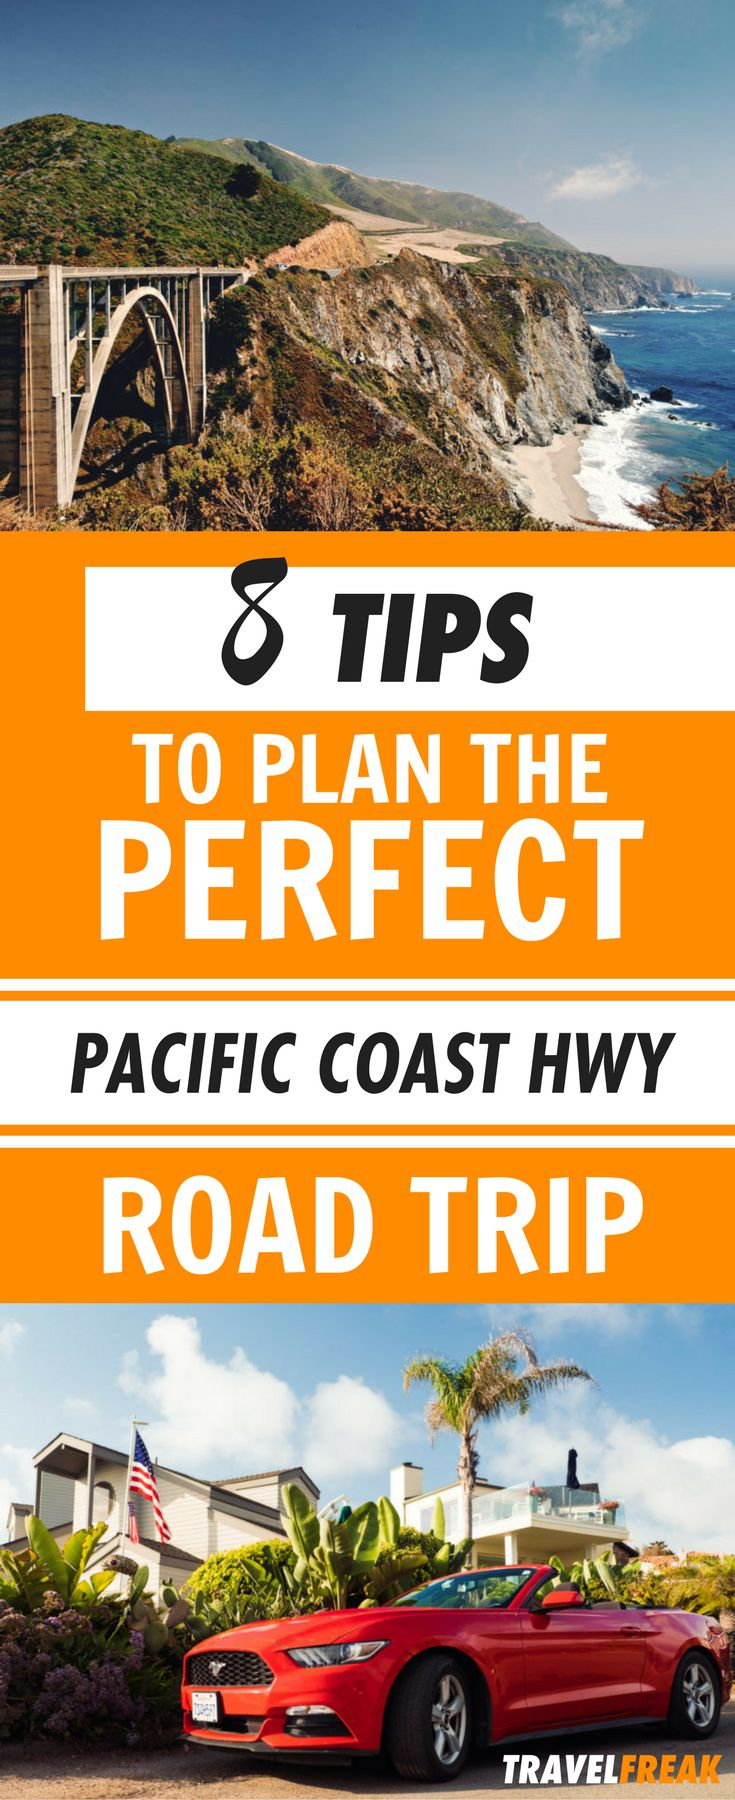 A Pacific Coast Highway road trip is the ultimate experience for those seeking adventure. Read this article for everything you need to know to plan your road trip to the Pacific Coast Highway.  It includes 8 useful tips to be prepared for your road trip! Ready to feel the wanderlust? Pacific Coast Highway Photography | Pacific Coast Highway Map| Pacific Coast Highway Stops #SantaMonica #Malibu #PacificCoastHighway via @travelfreak_